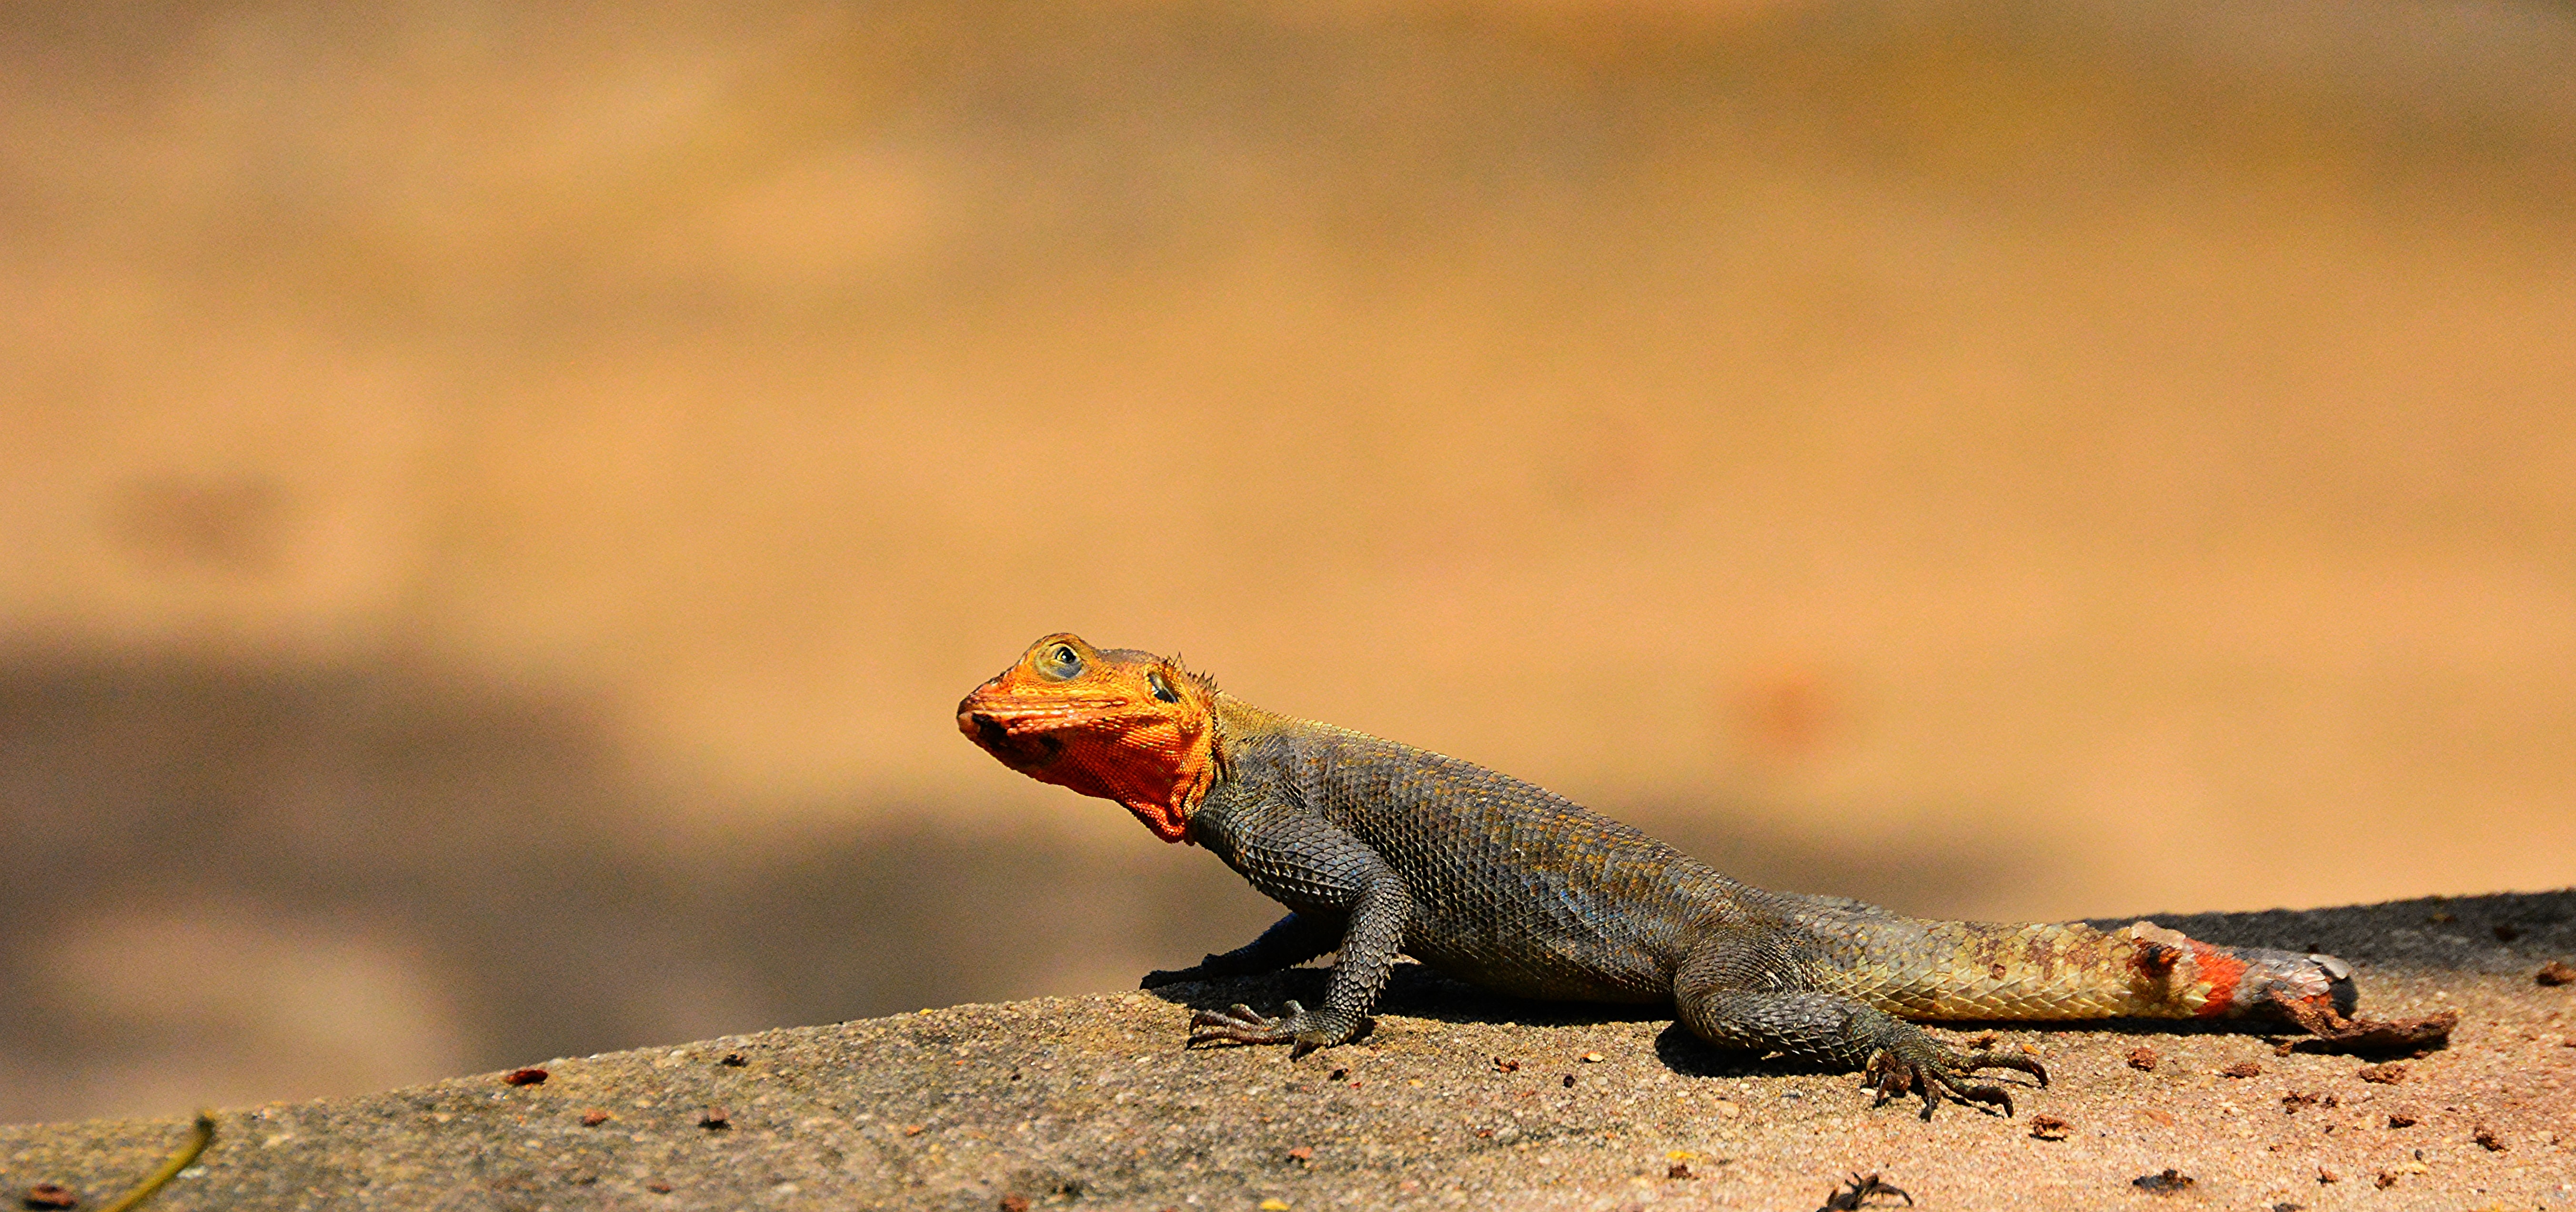 An orange headed lizard with a black body on stone beside a blurred outdoor background